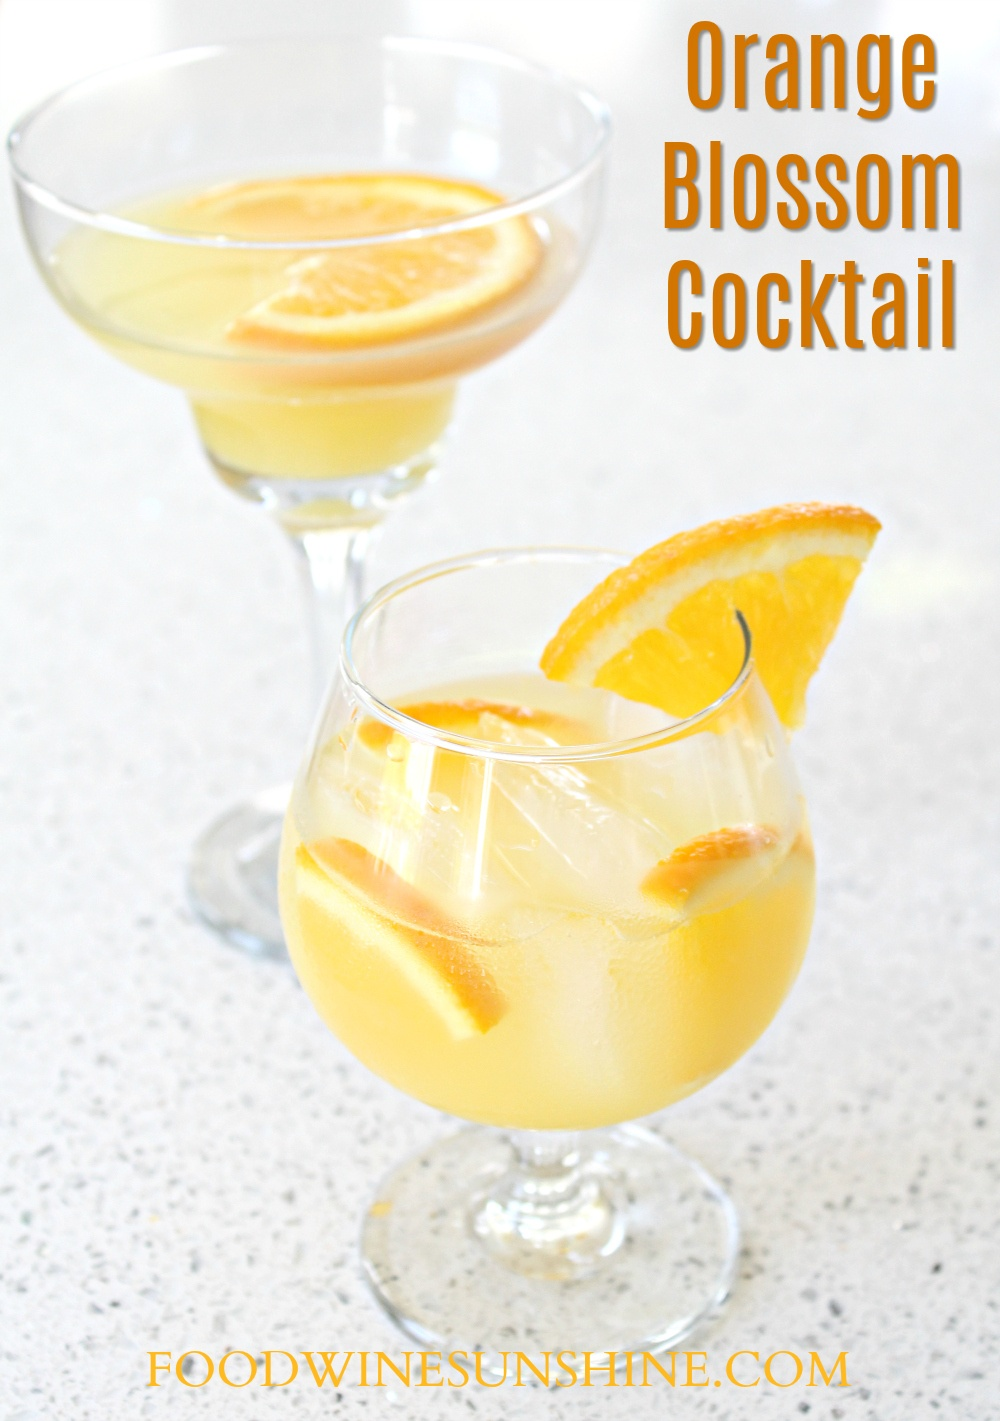 How To Make an Orange Blossom Cocktail